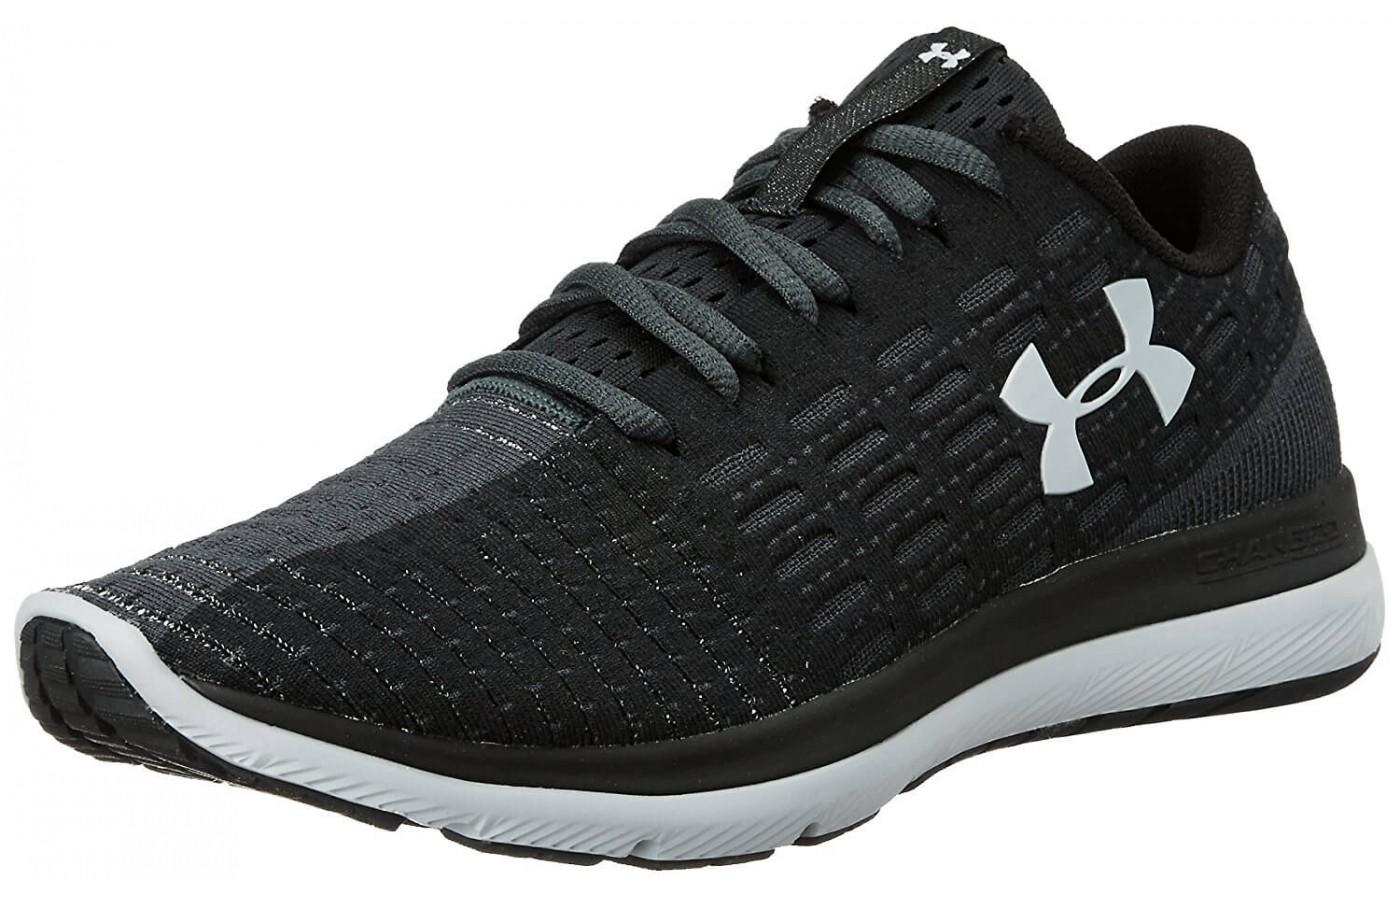 under armour 2017. the under armour threadborne slingflex shown from front/side 2017